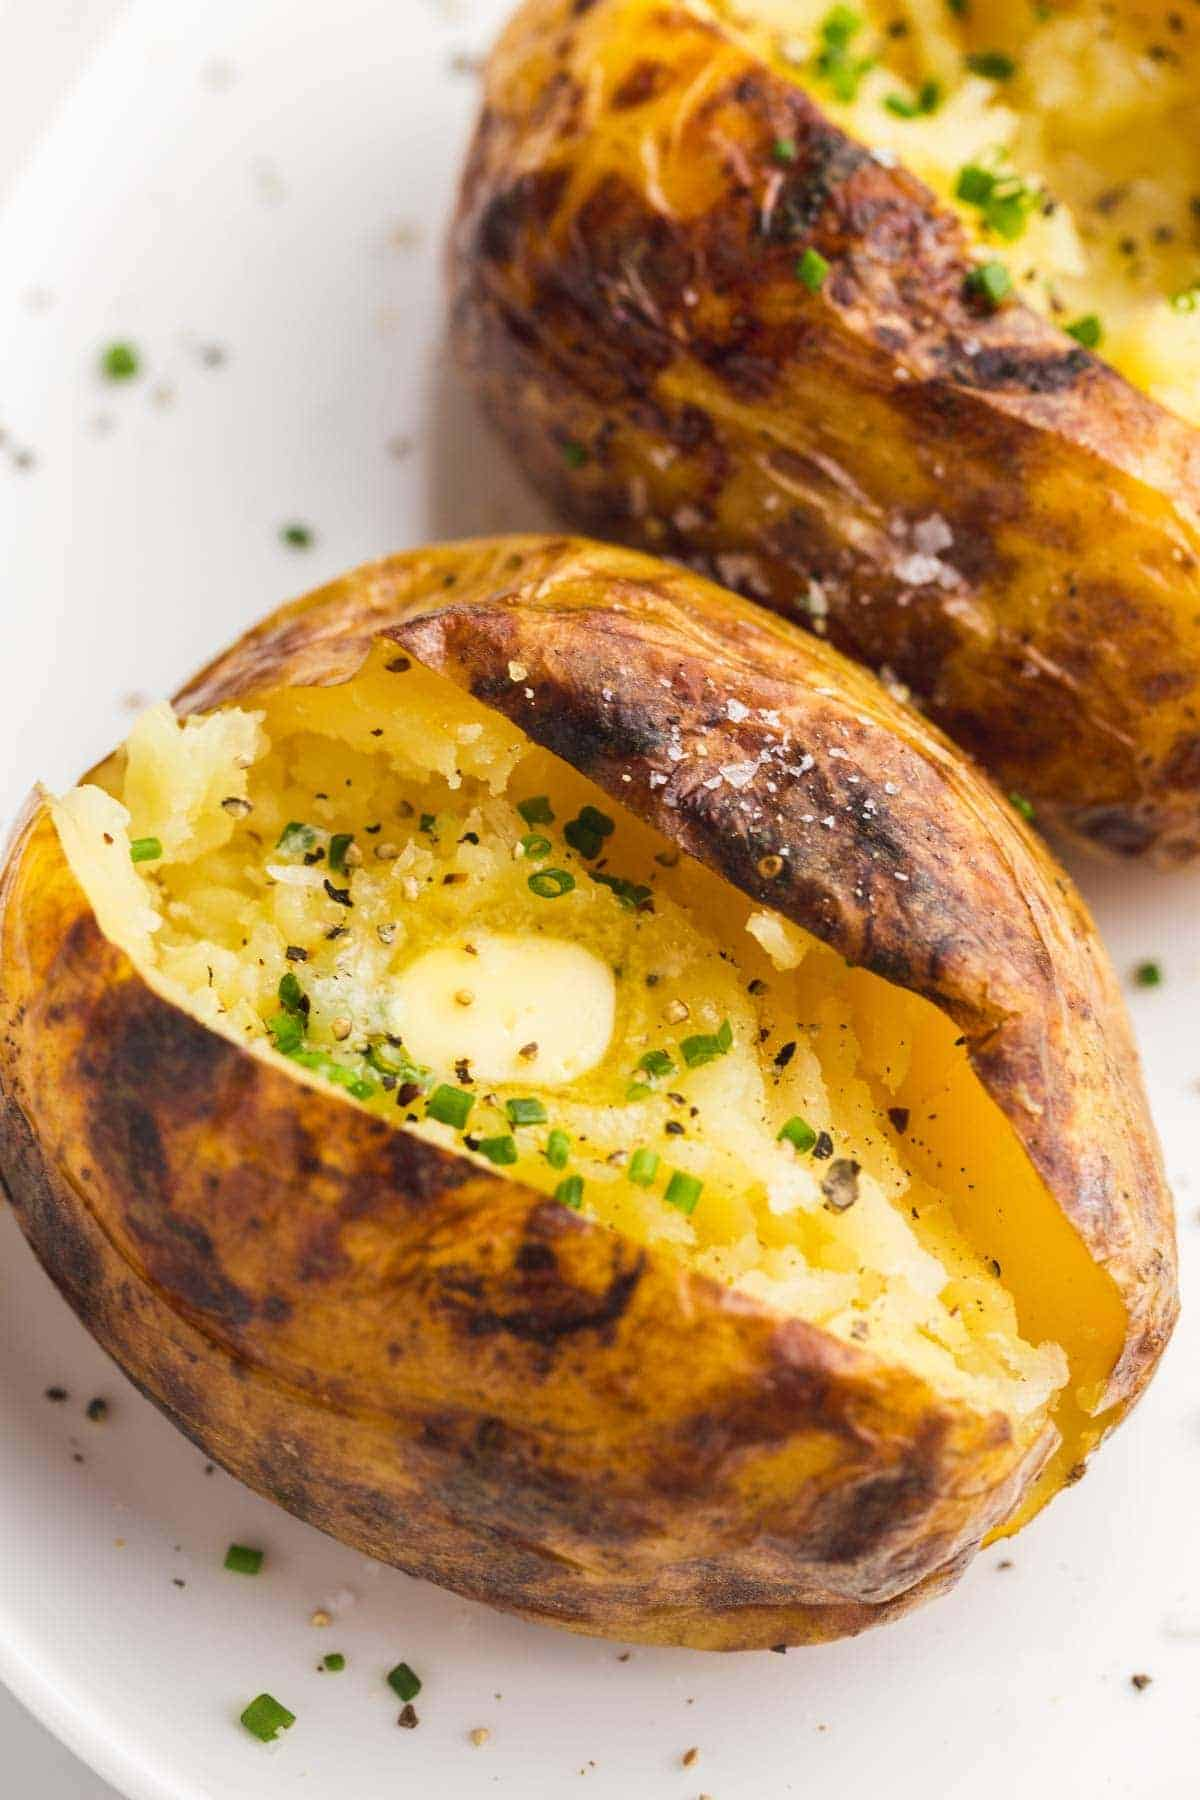 2 Baked Potatoes with butter, chopped chives, and sea salt flakes